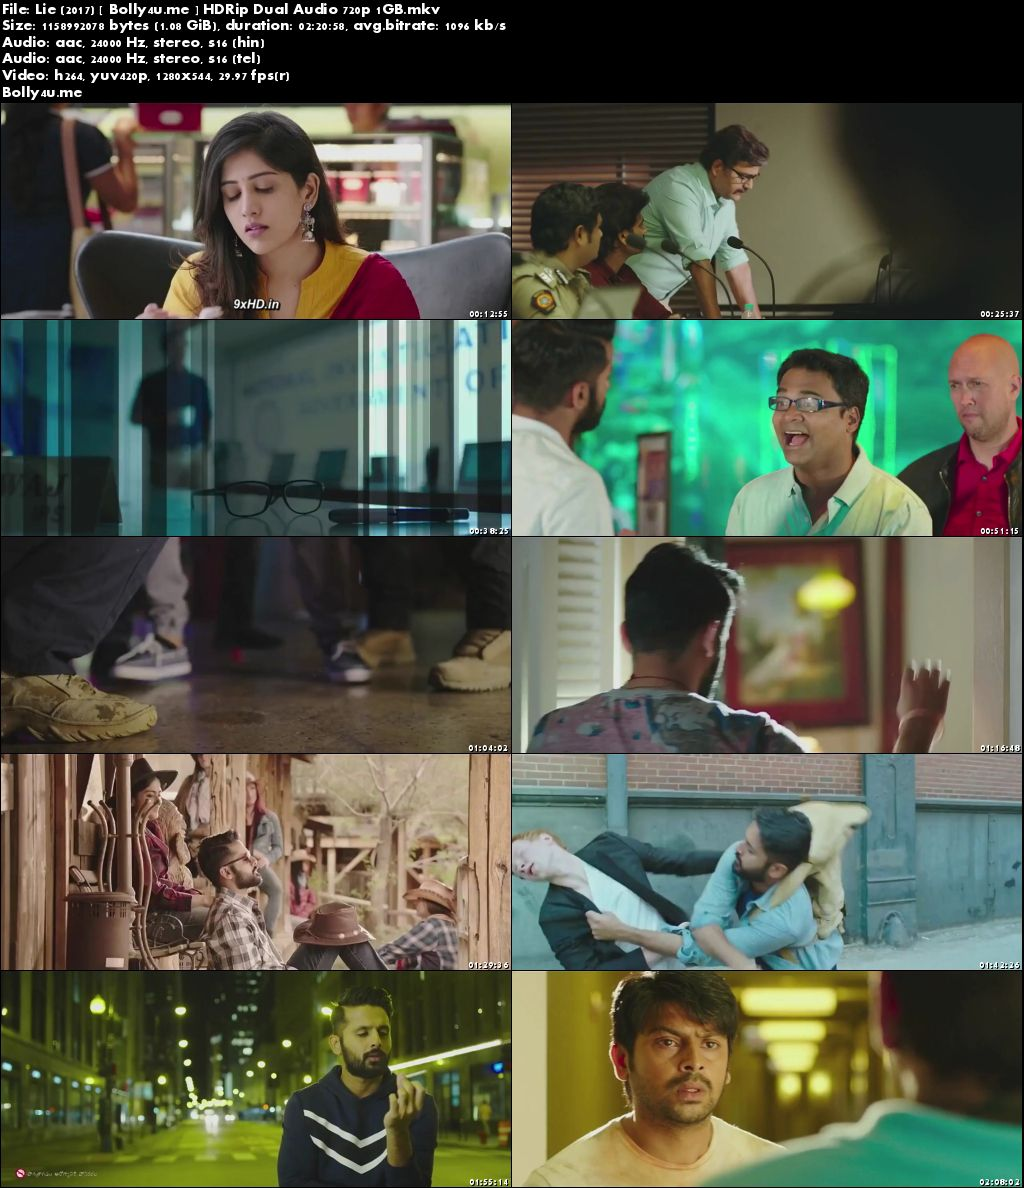 LIE 2017 HDRip UNCUT Hindi Dubbed Dual Audio 720p ESub Download